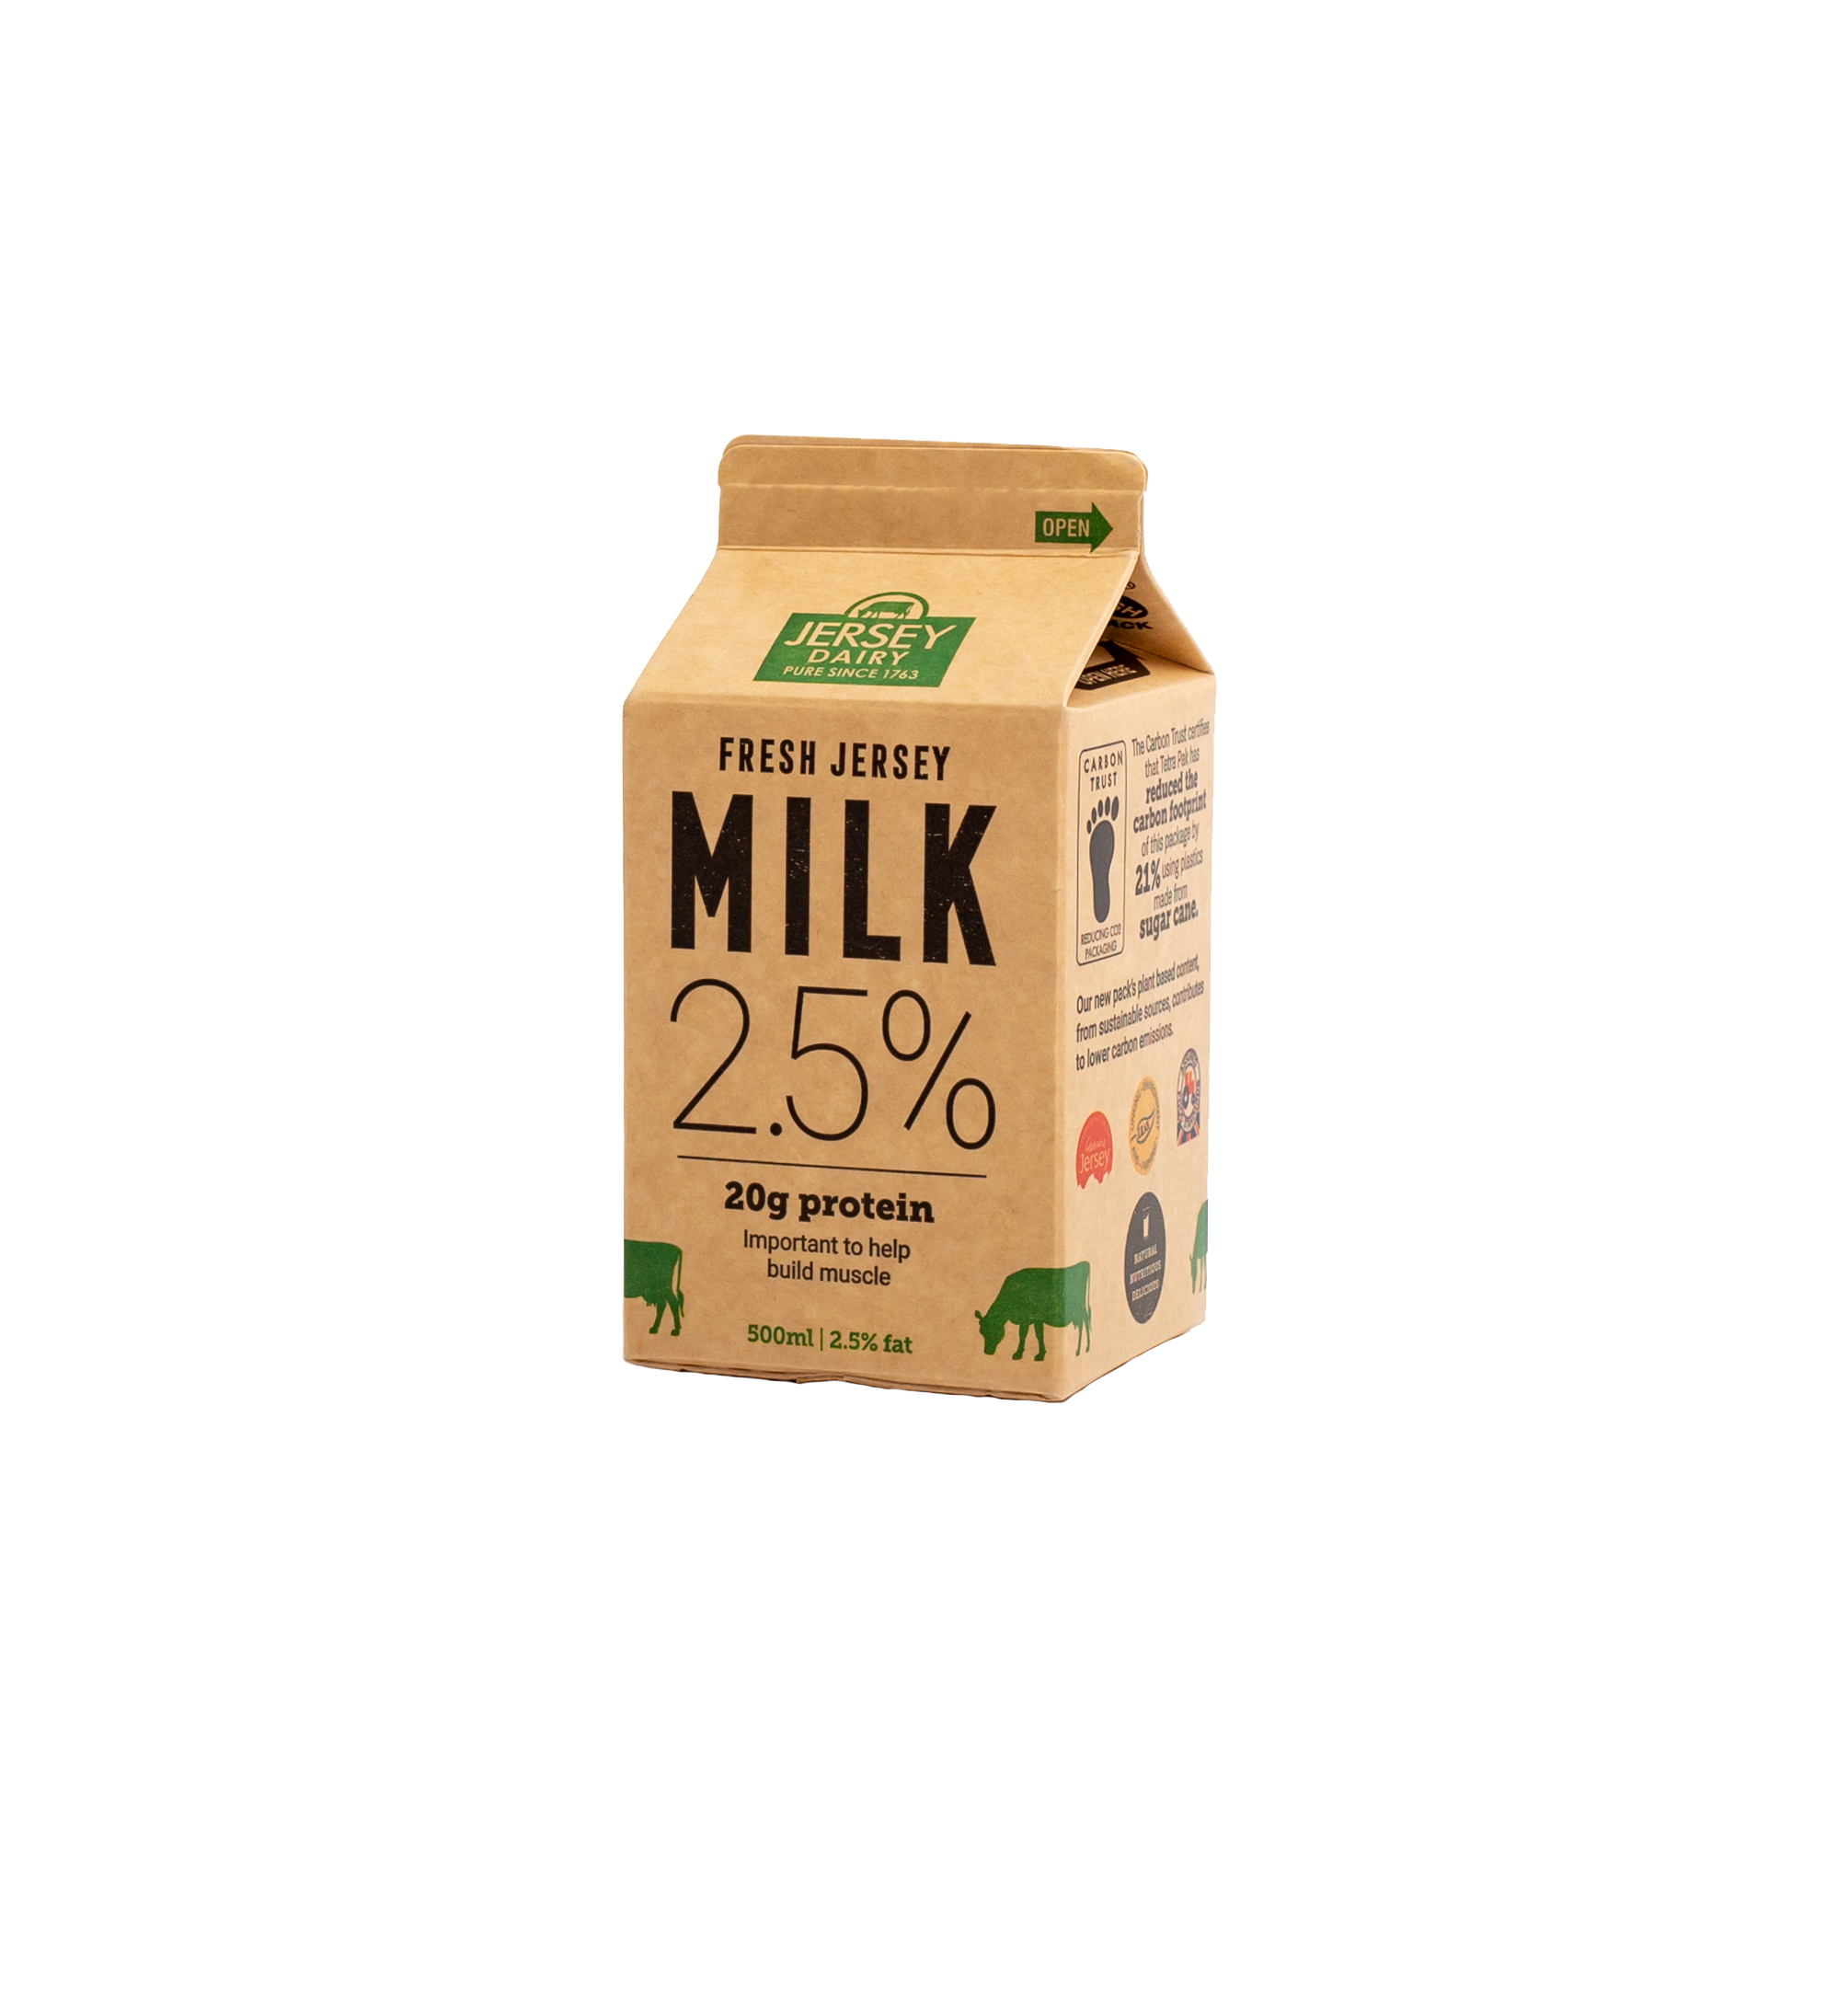 Milk category image